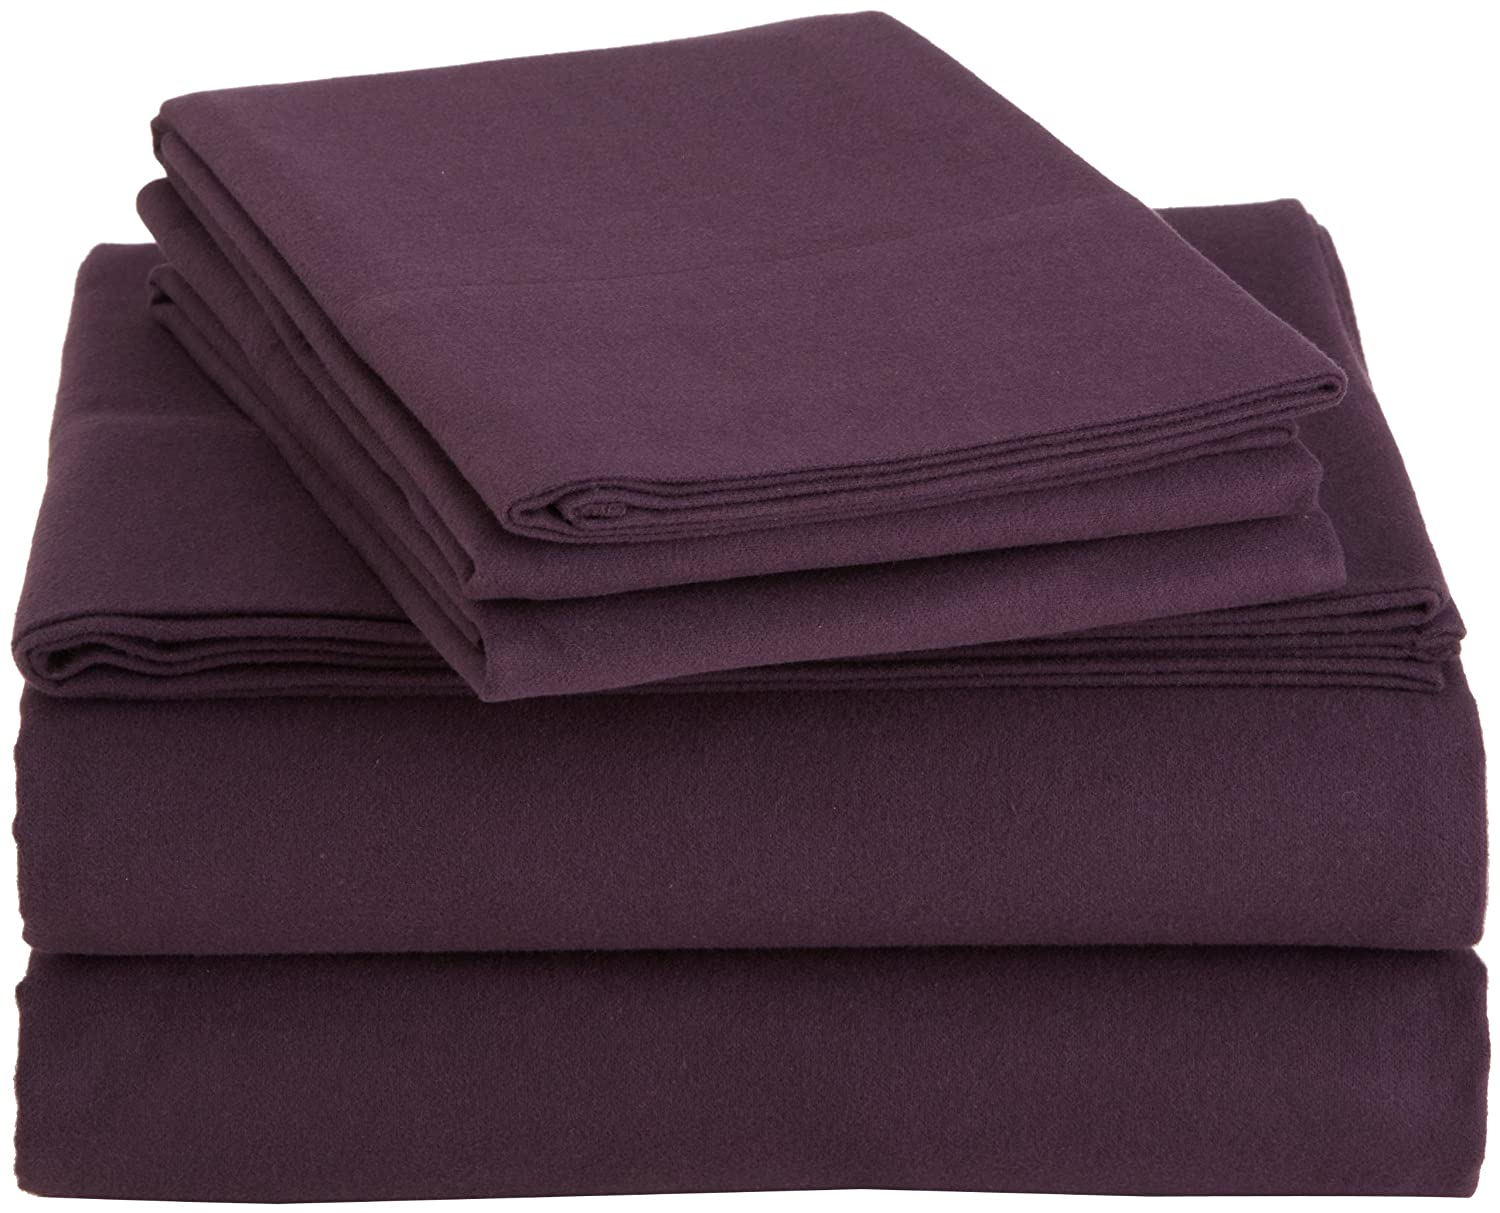 Queen Size Ultra-Soft Cotton Velvet Flannel Bed Sheets ...